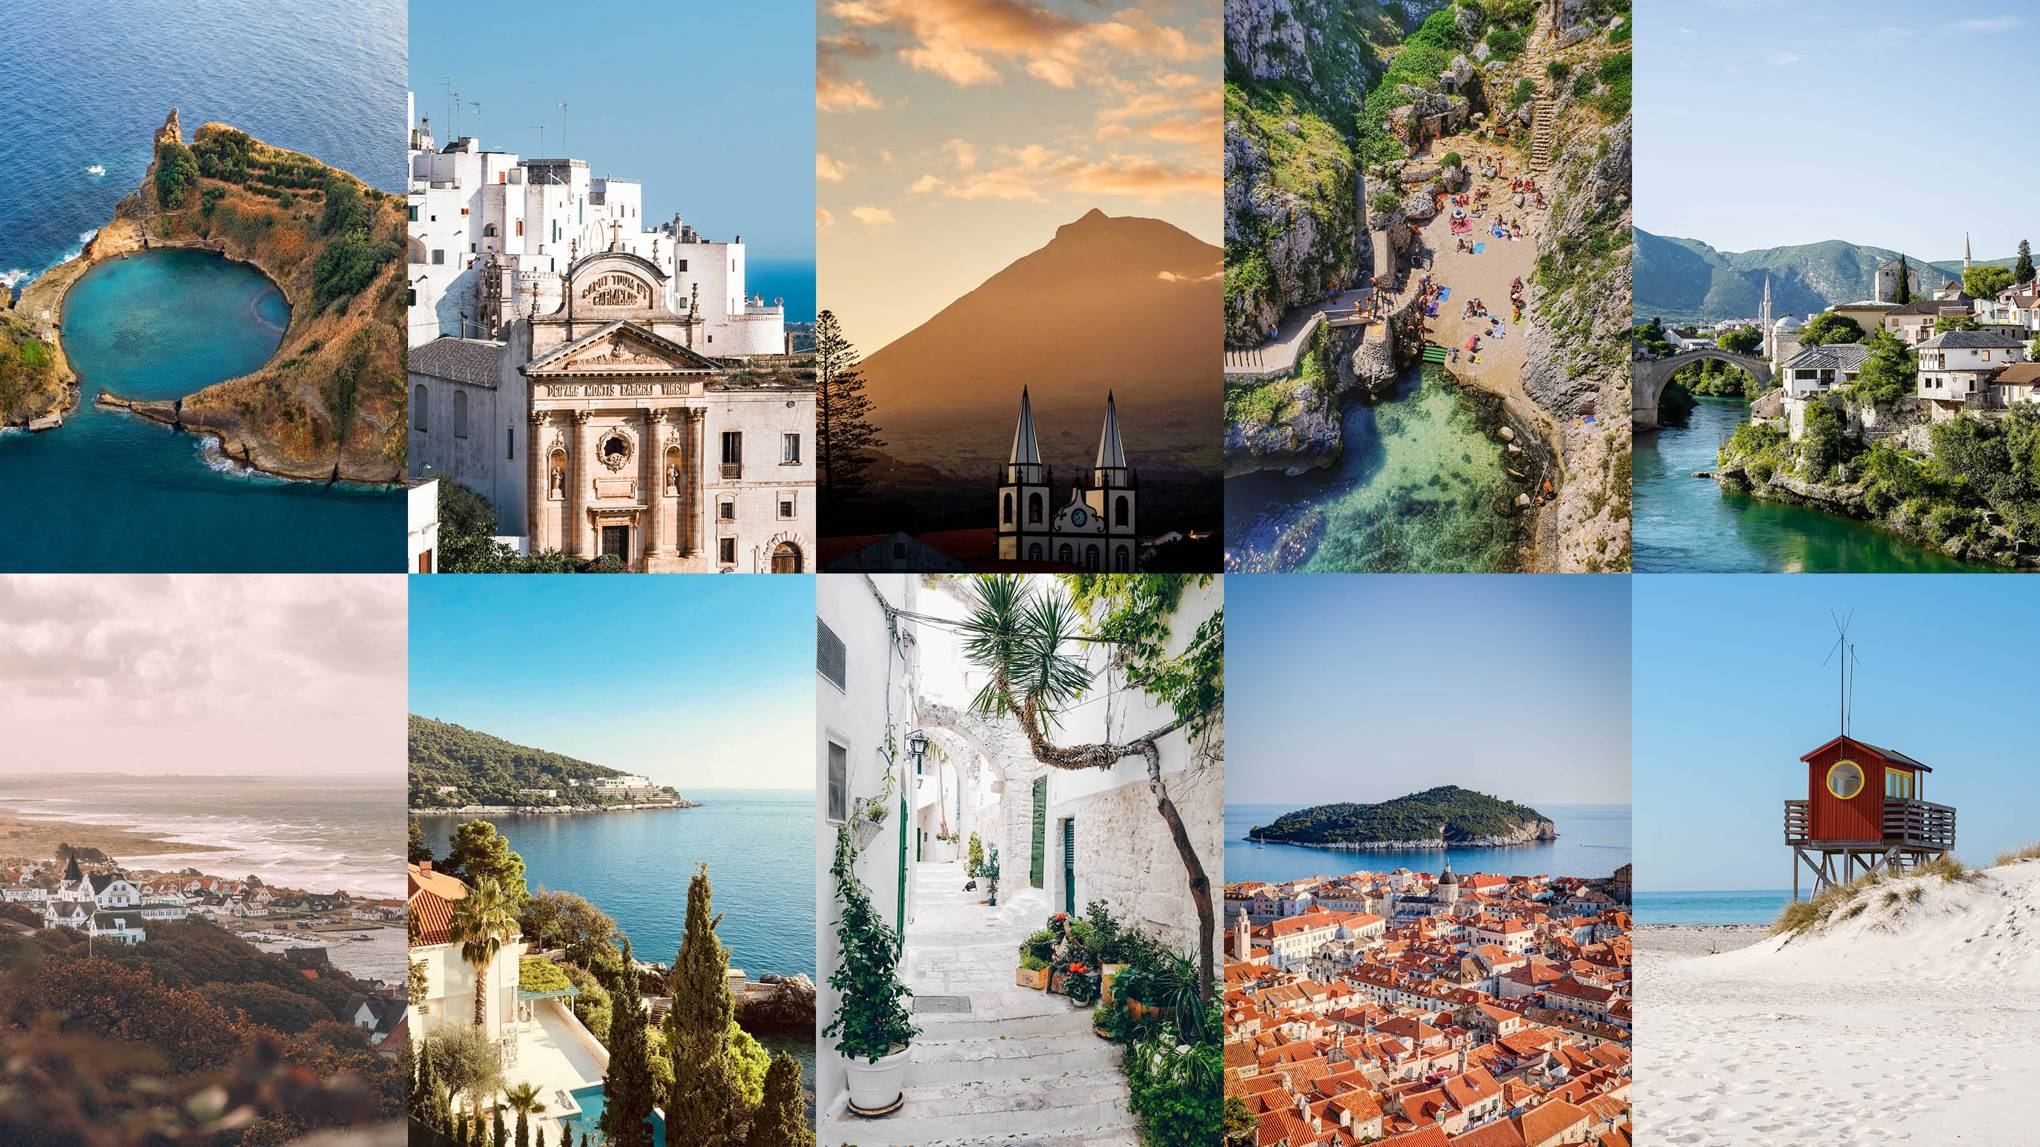 The 10 best places to visit in Europe in 2021 | CN Traveller